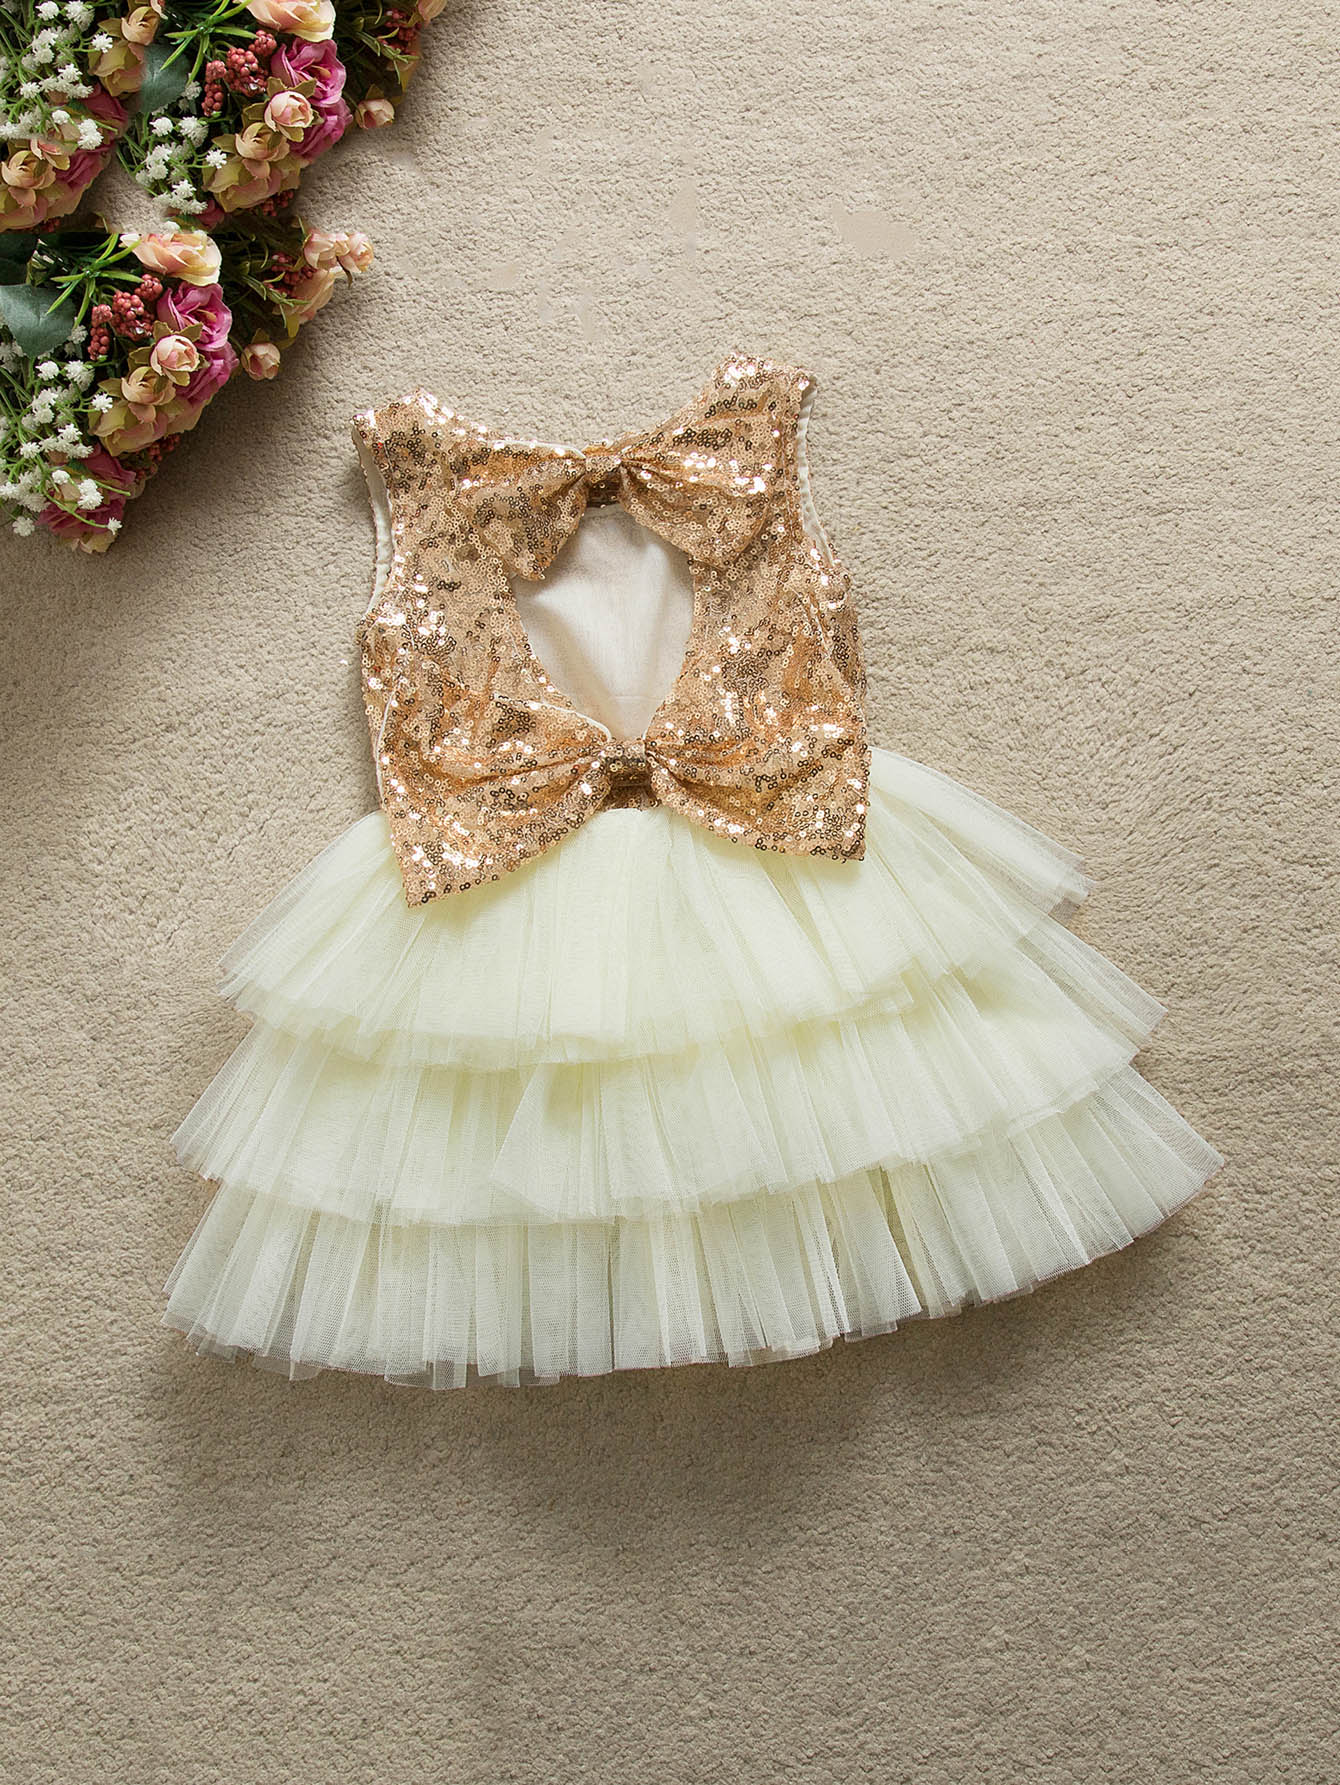 Girls Contrast Sequin Bow Ball Gown Dress 2017 new cute golden sequined flower girl dresses baby little girls ball gowns dresses with big bow for one year birthday dress